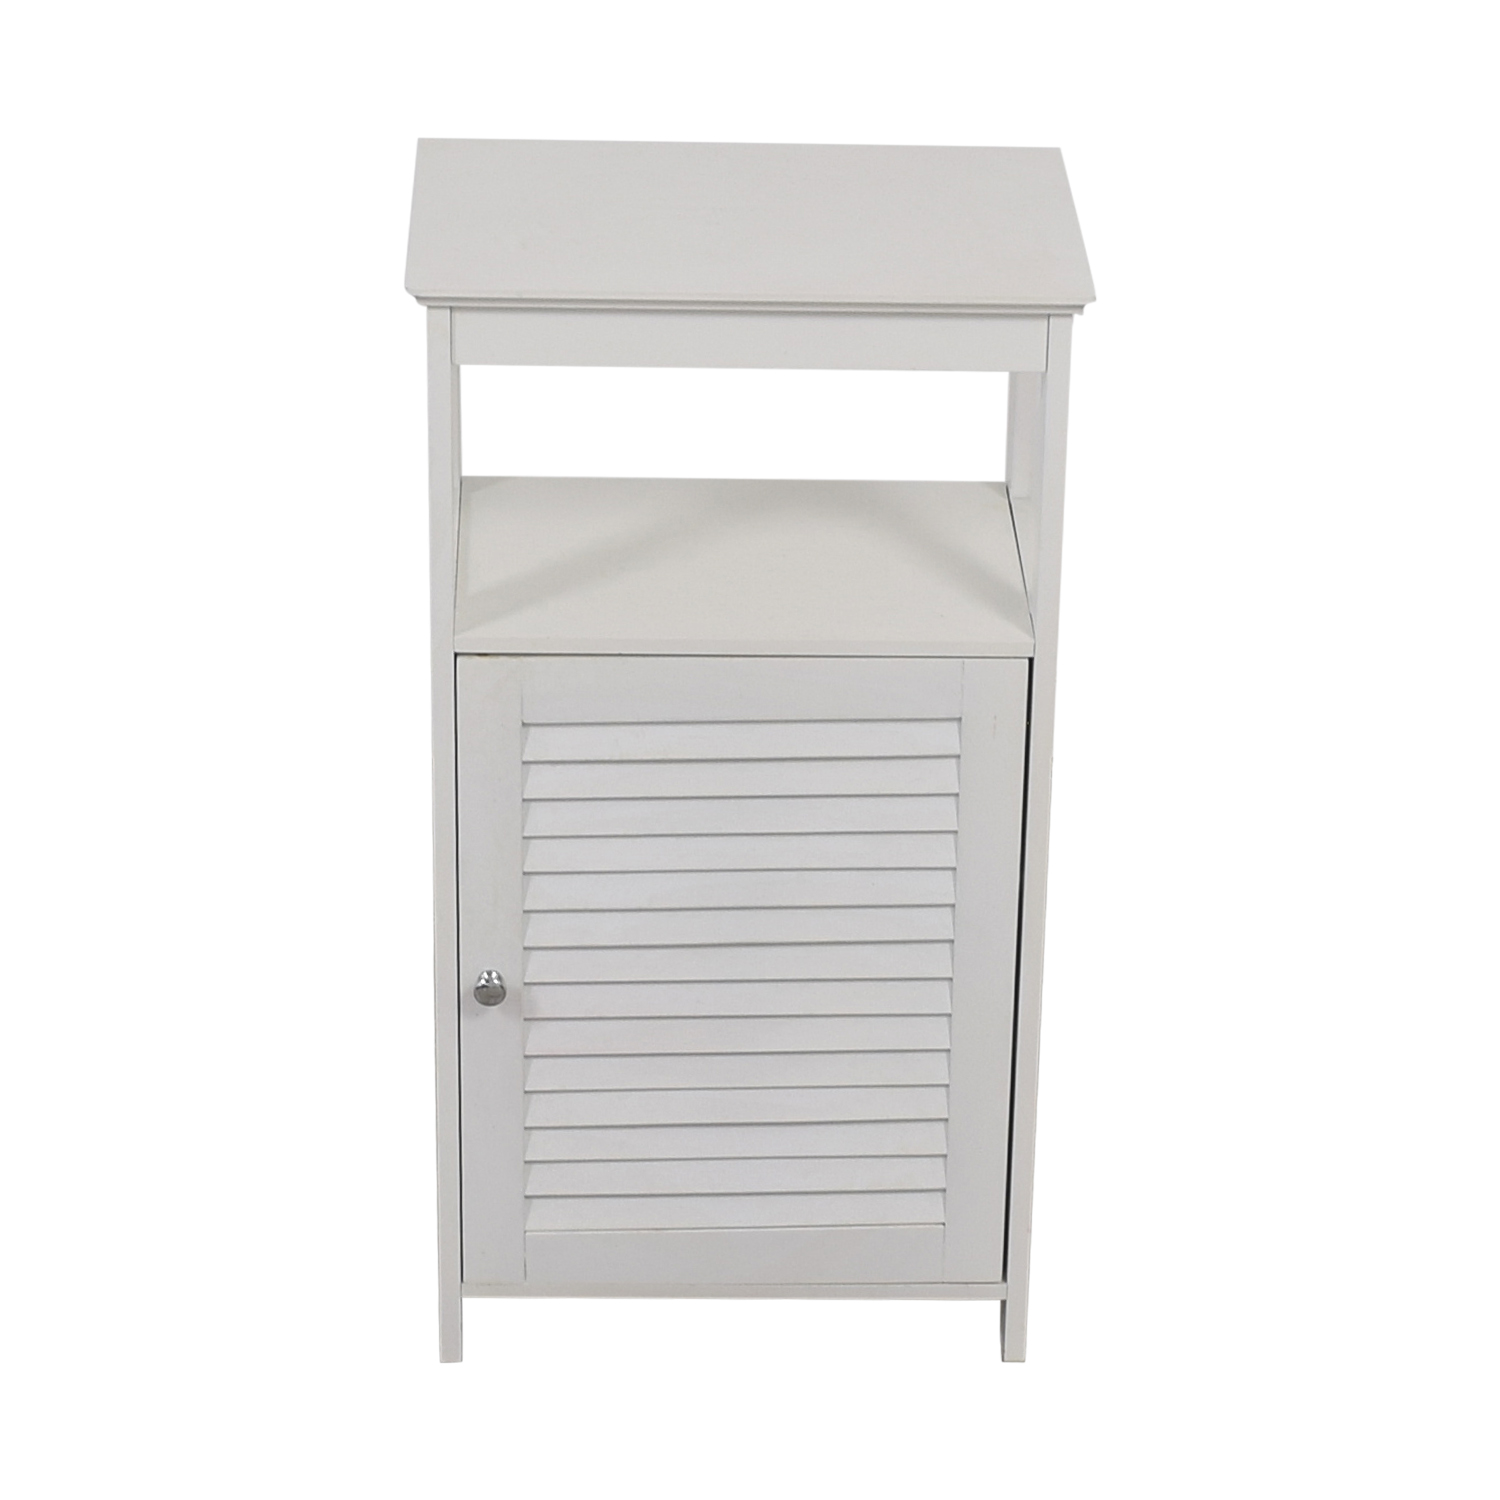 White Bathroom Cabinet for sale